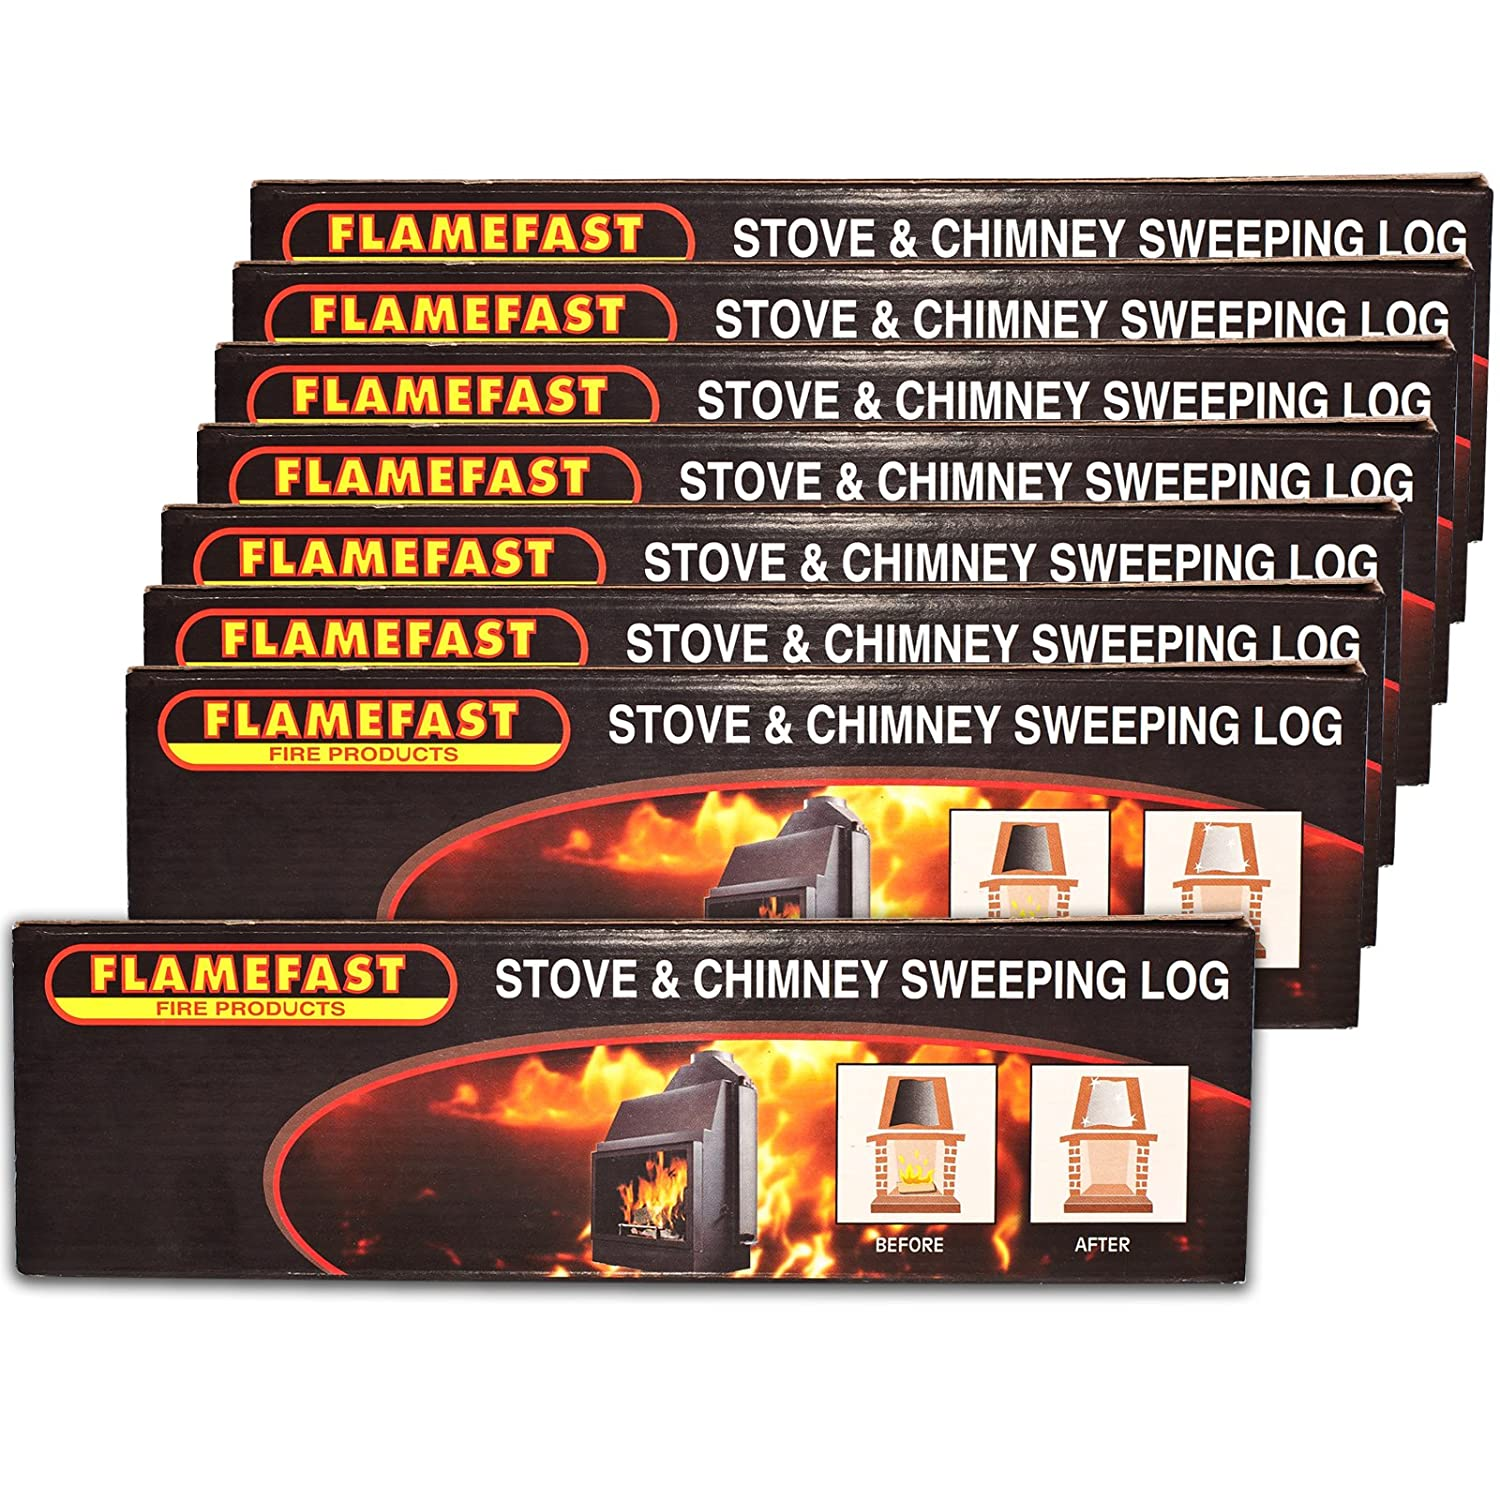 2 x flamefast stove u0026 chimney sweeping logs help to remove